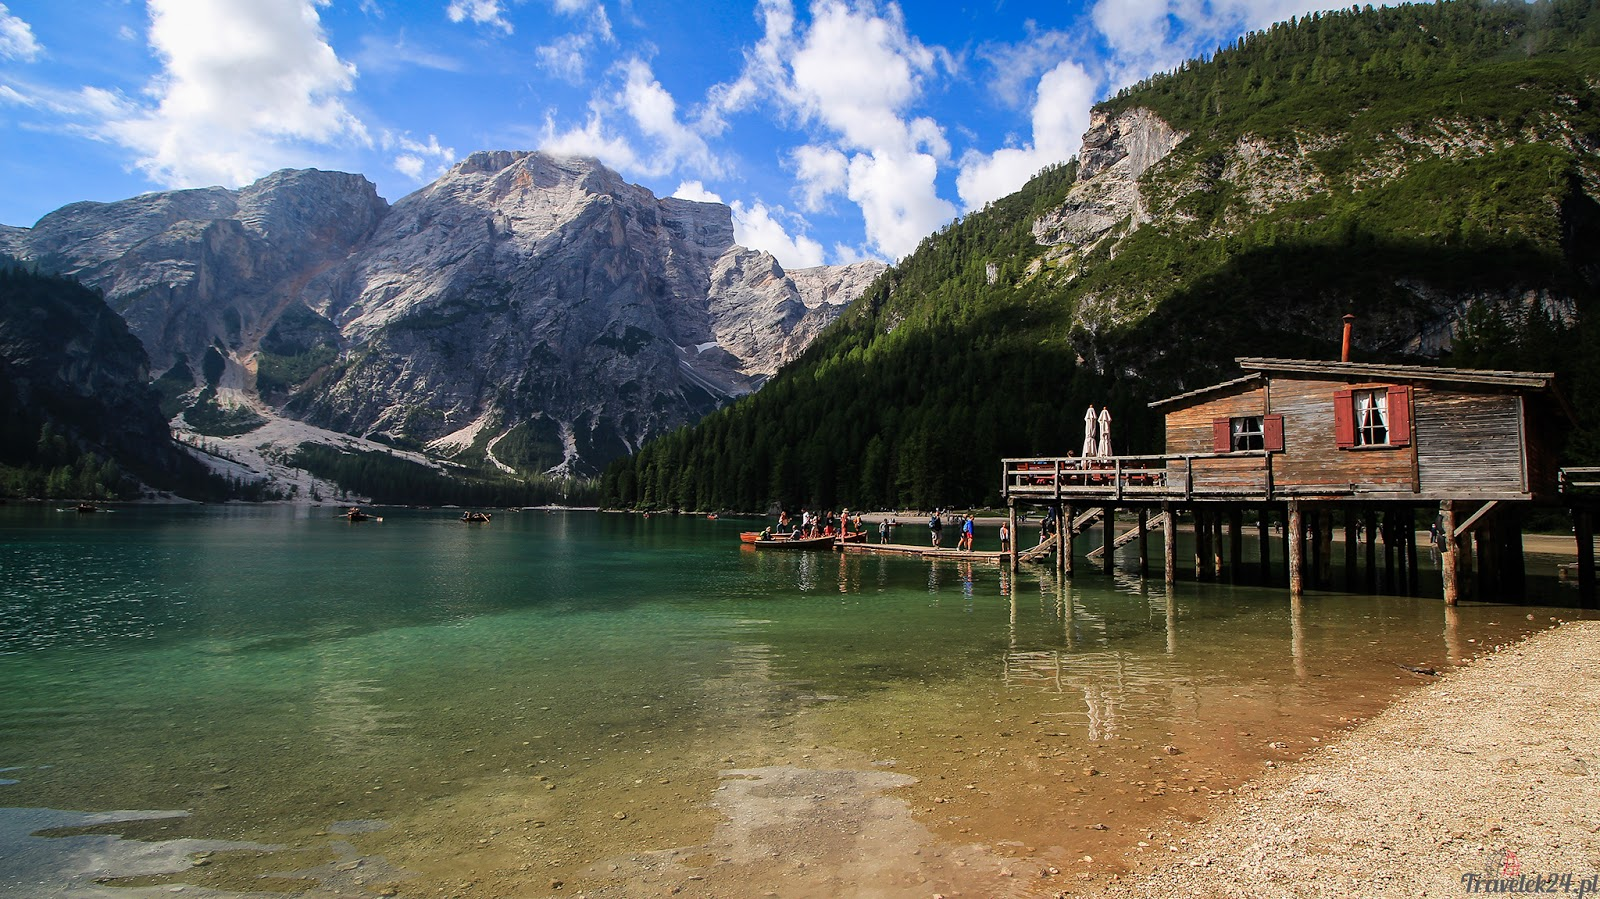 Lago di Braies łódka